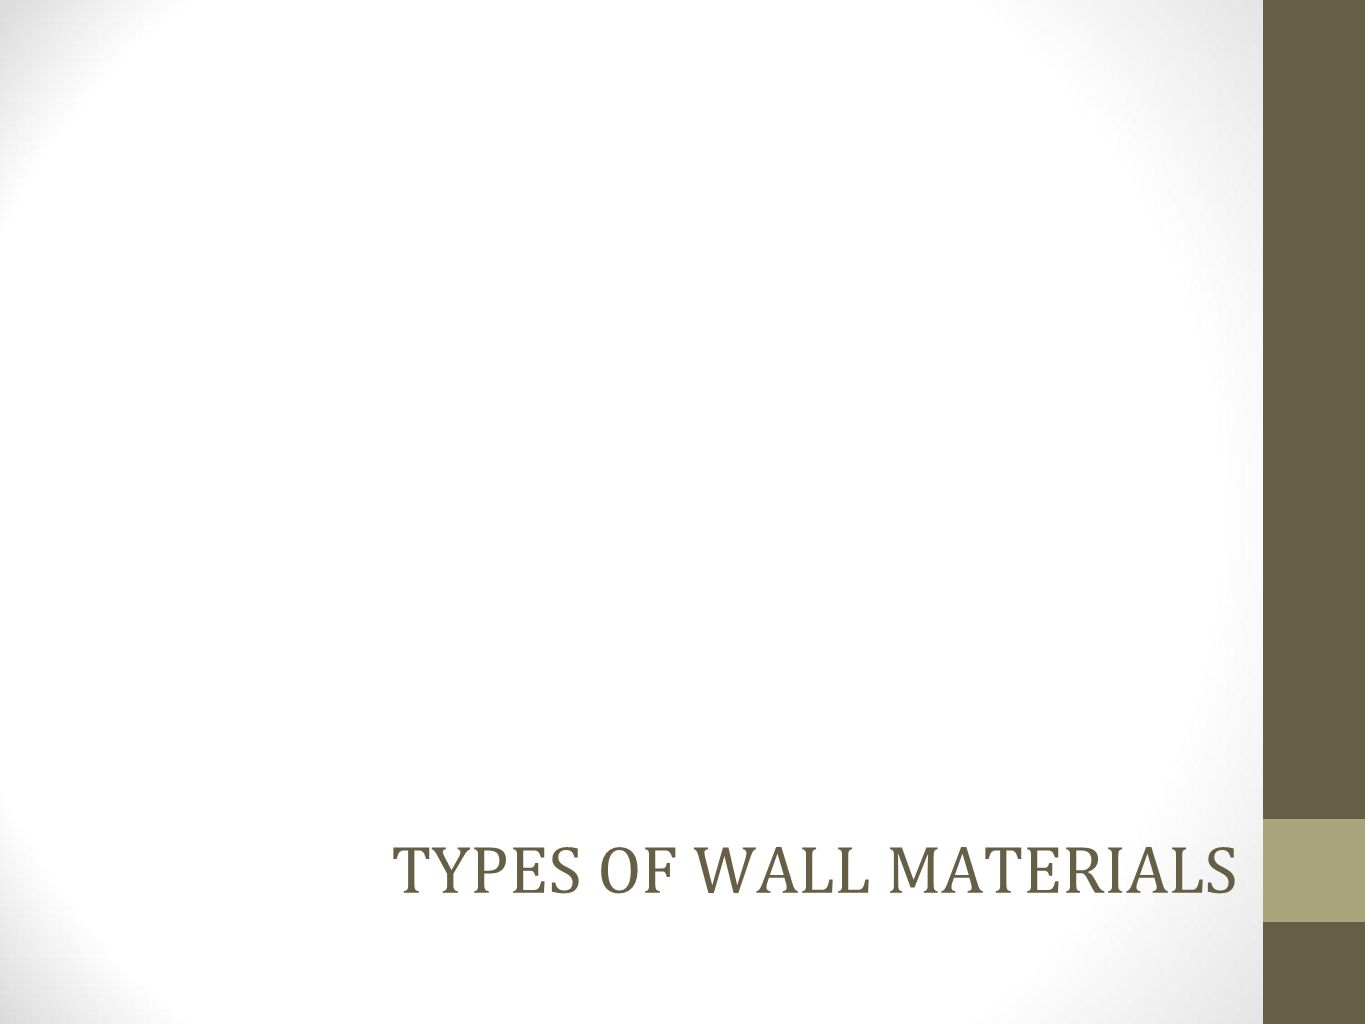 Plaster: An old technique in which plaster is applied over the wallboard or concrete block using a lath.